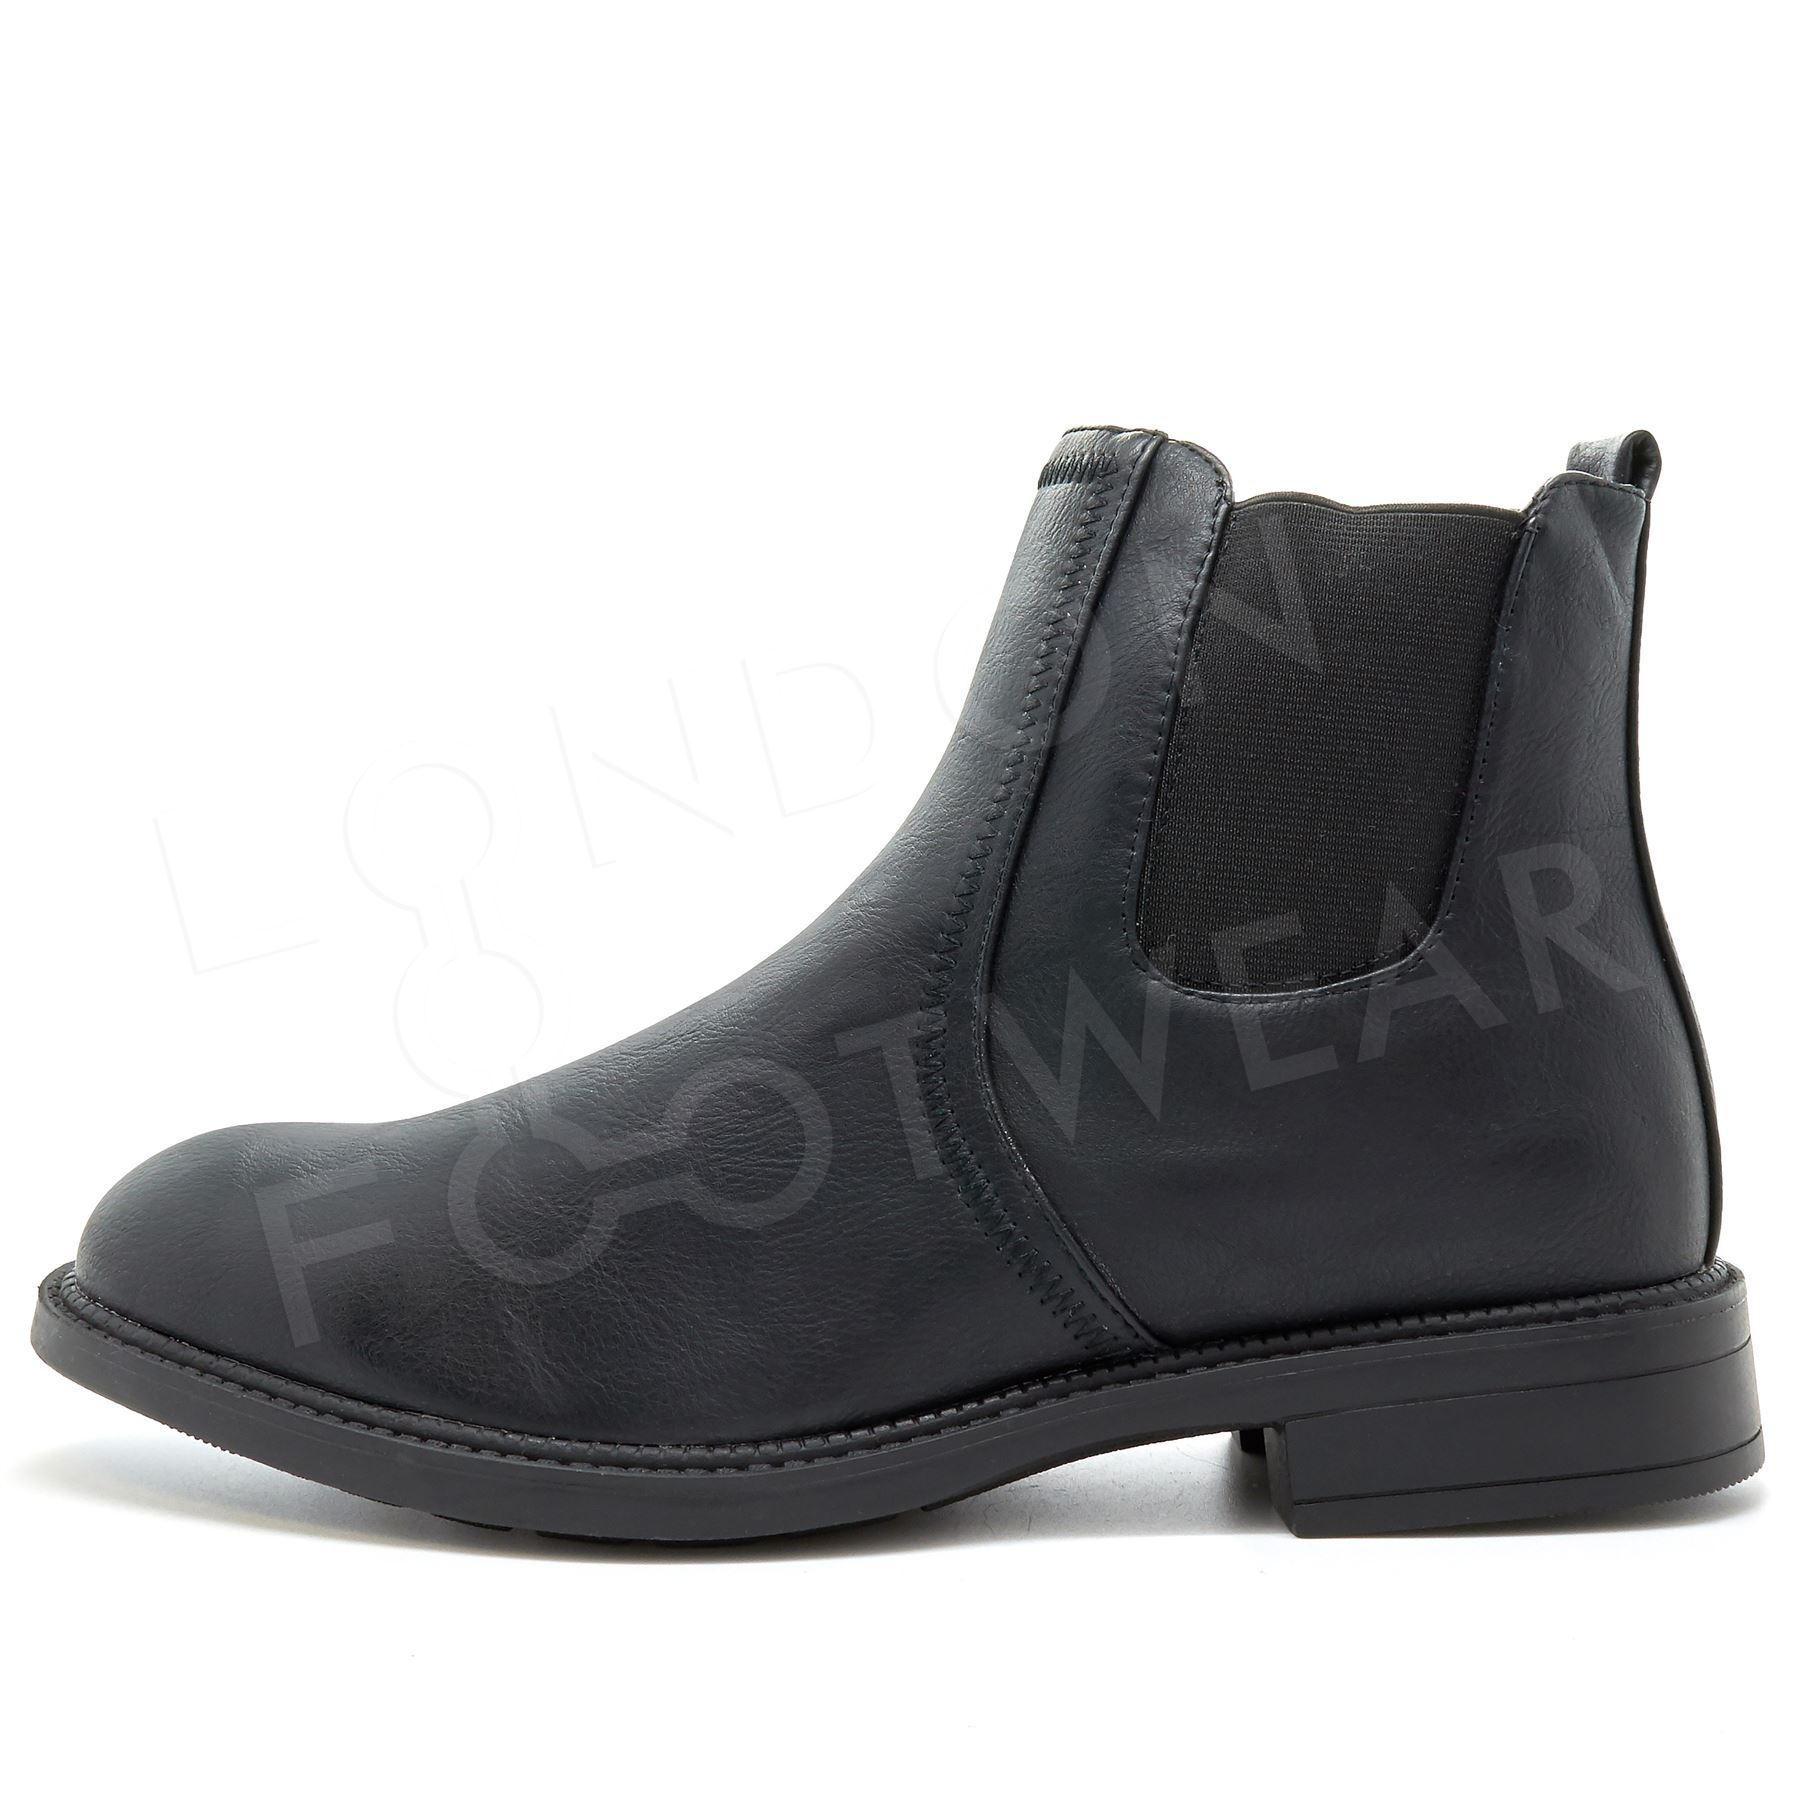 New Mens Chelsea Boots Dealer Ankle Shoes Smart Work Slip On Faux Leather Size